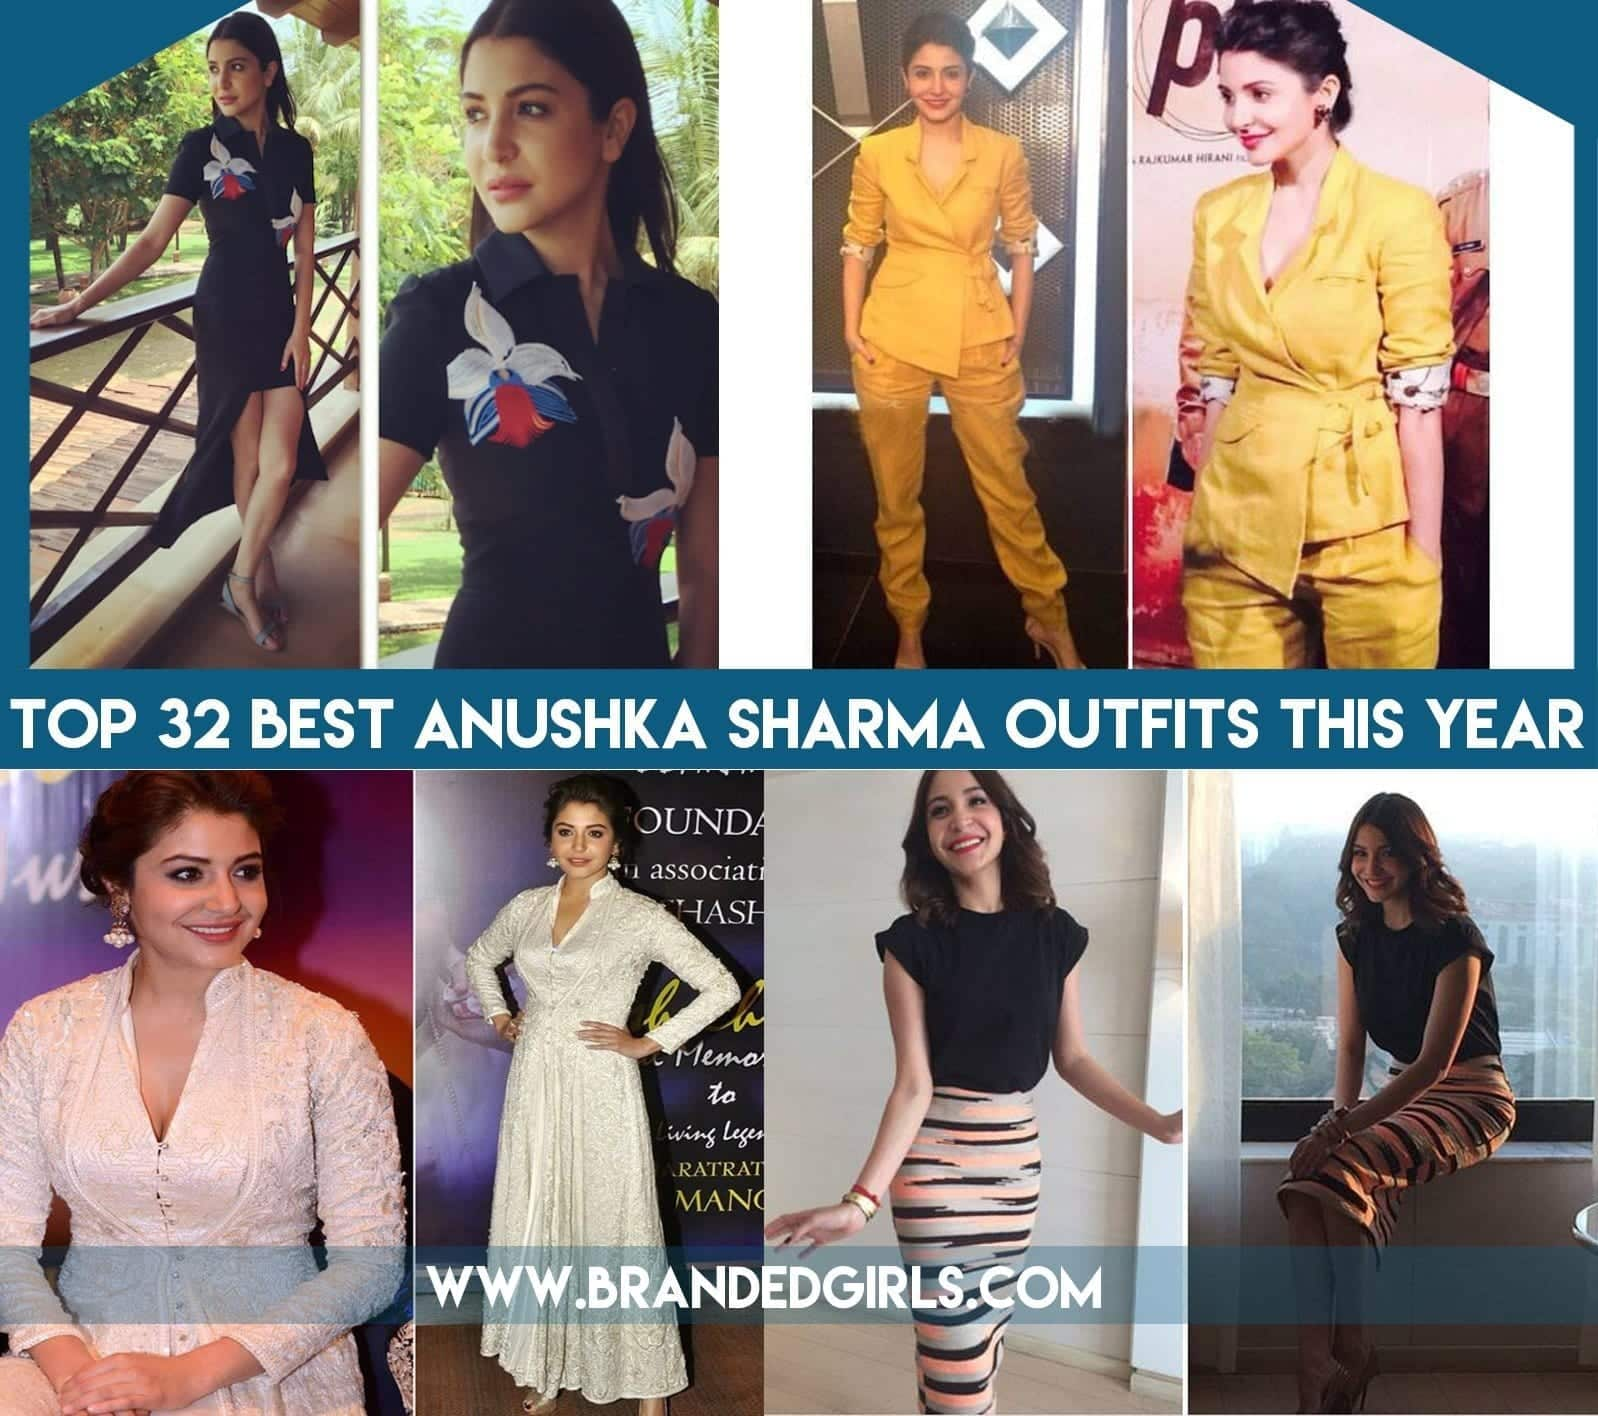 Top 32 Anushka Sharma Outfits This Year